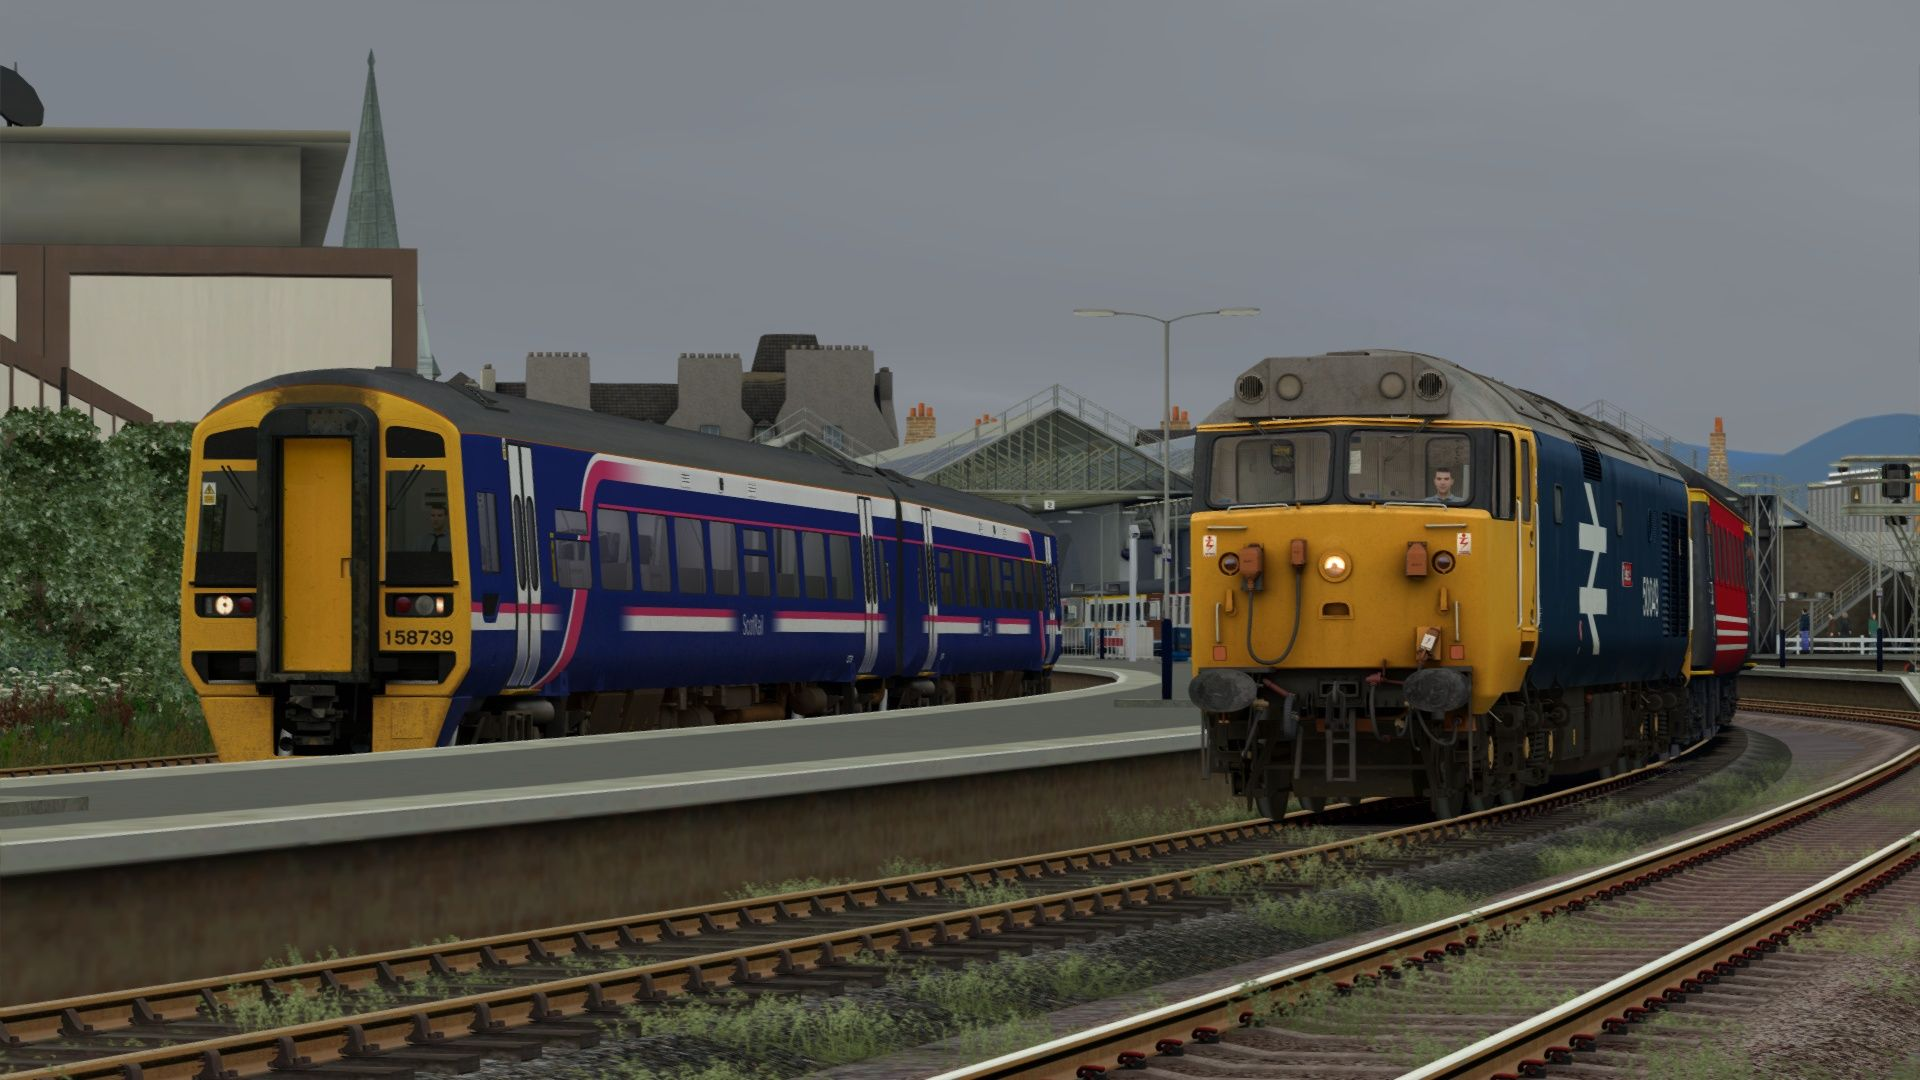 Screenshot_Just Trains - The Kyle Line_57.48155--4.21992_06-49-27.jpg